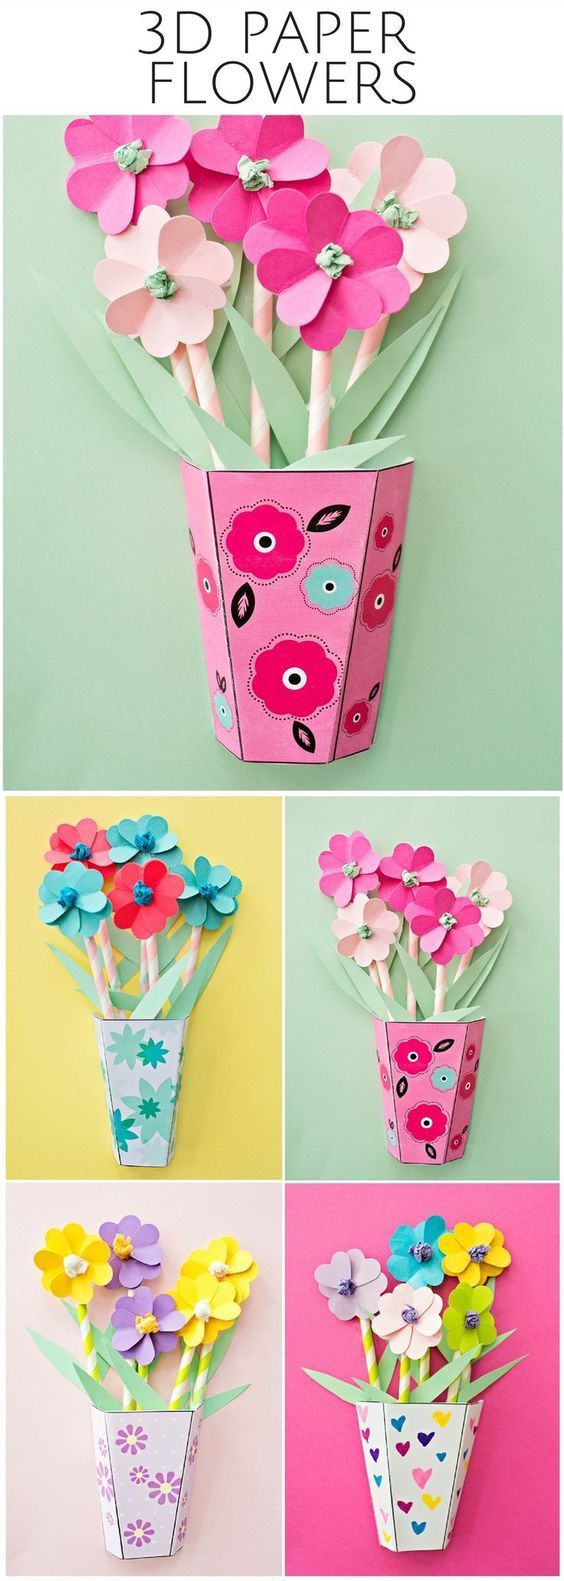 How To Make 3d Paper Flower Bouquets With Video 3d Paper Flower